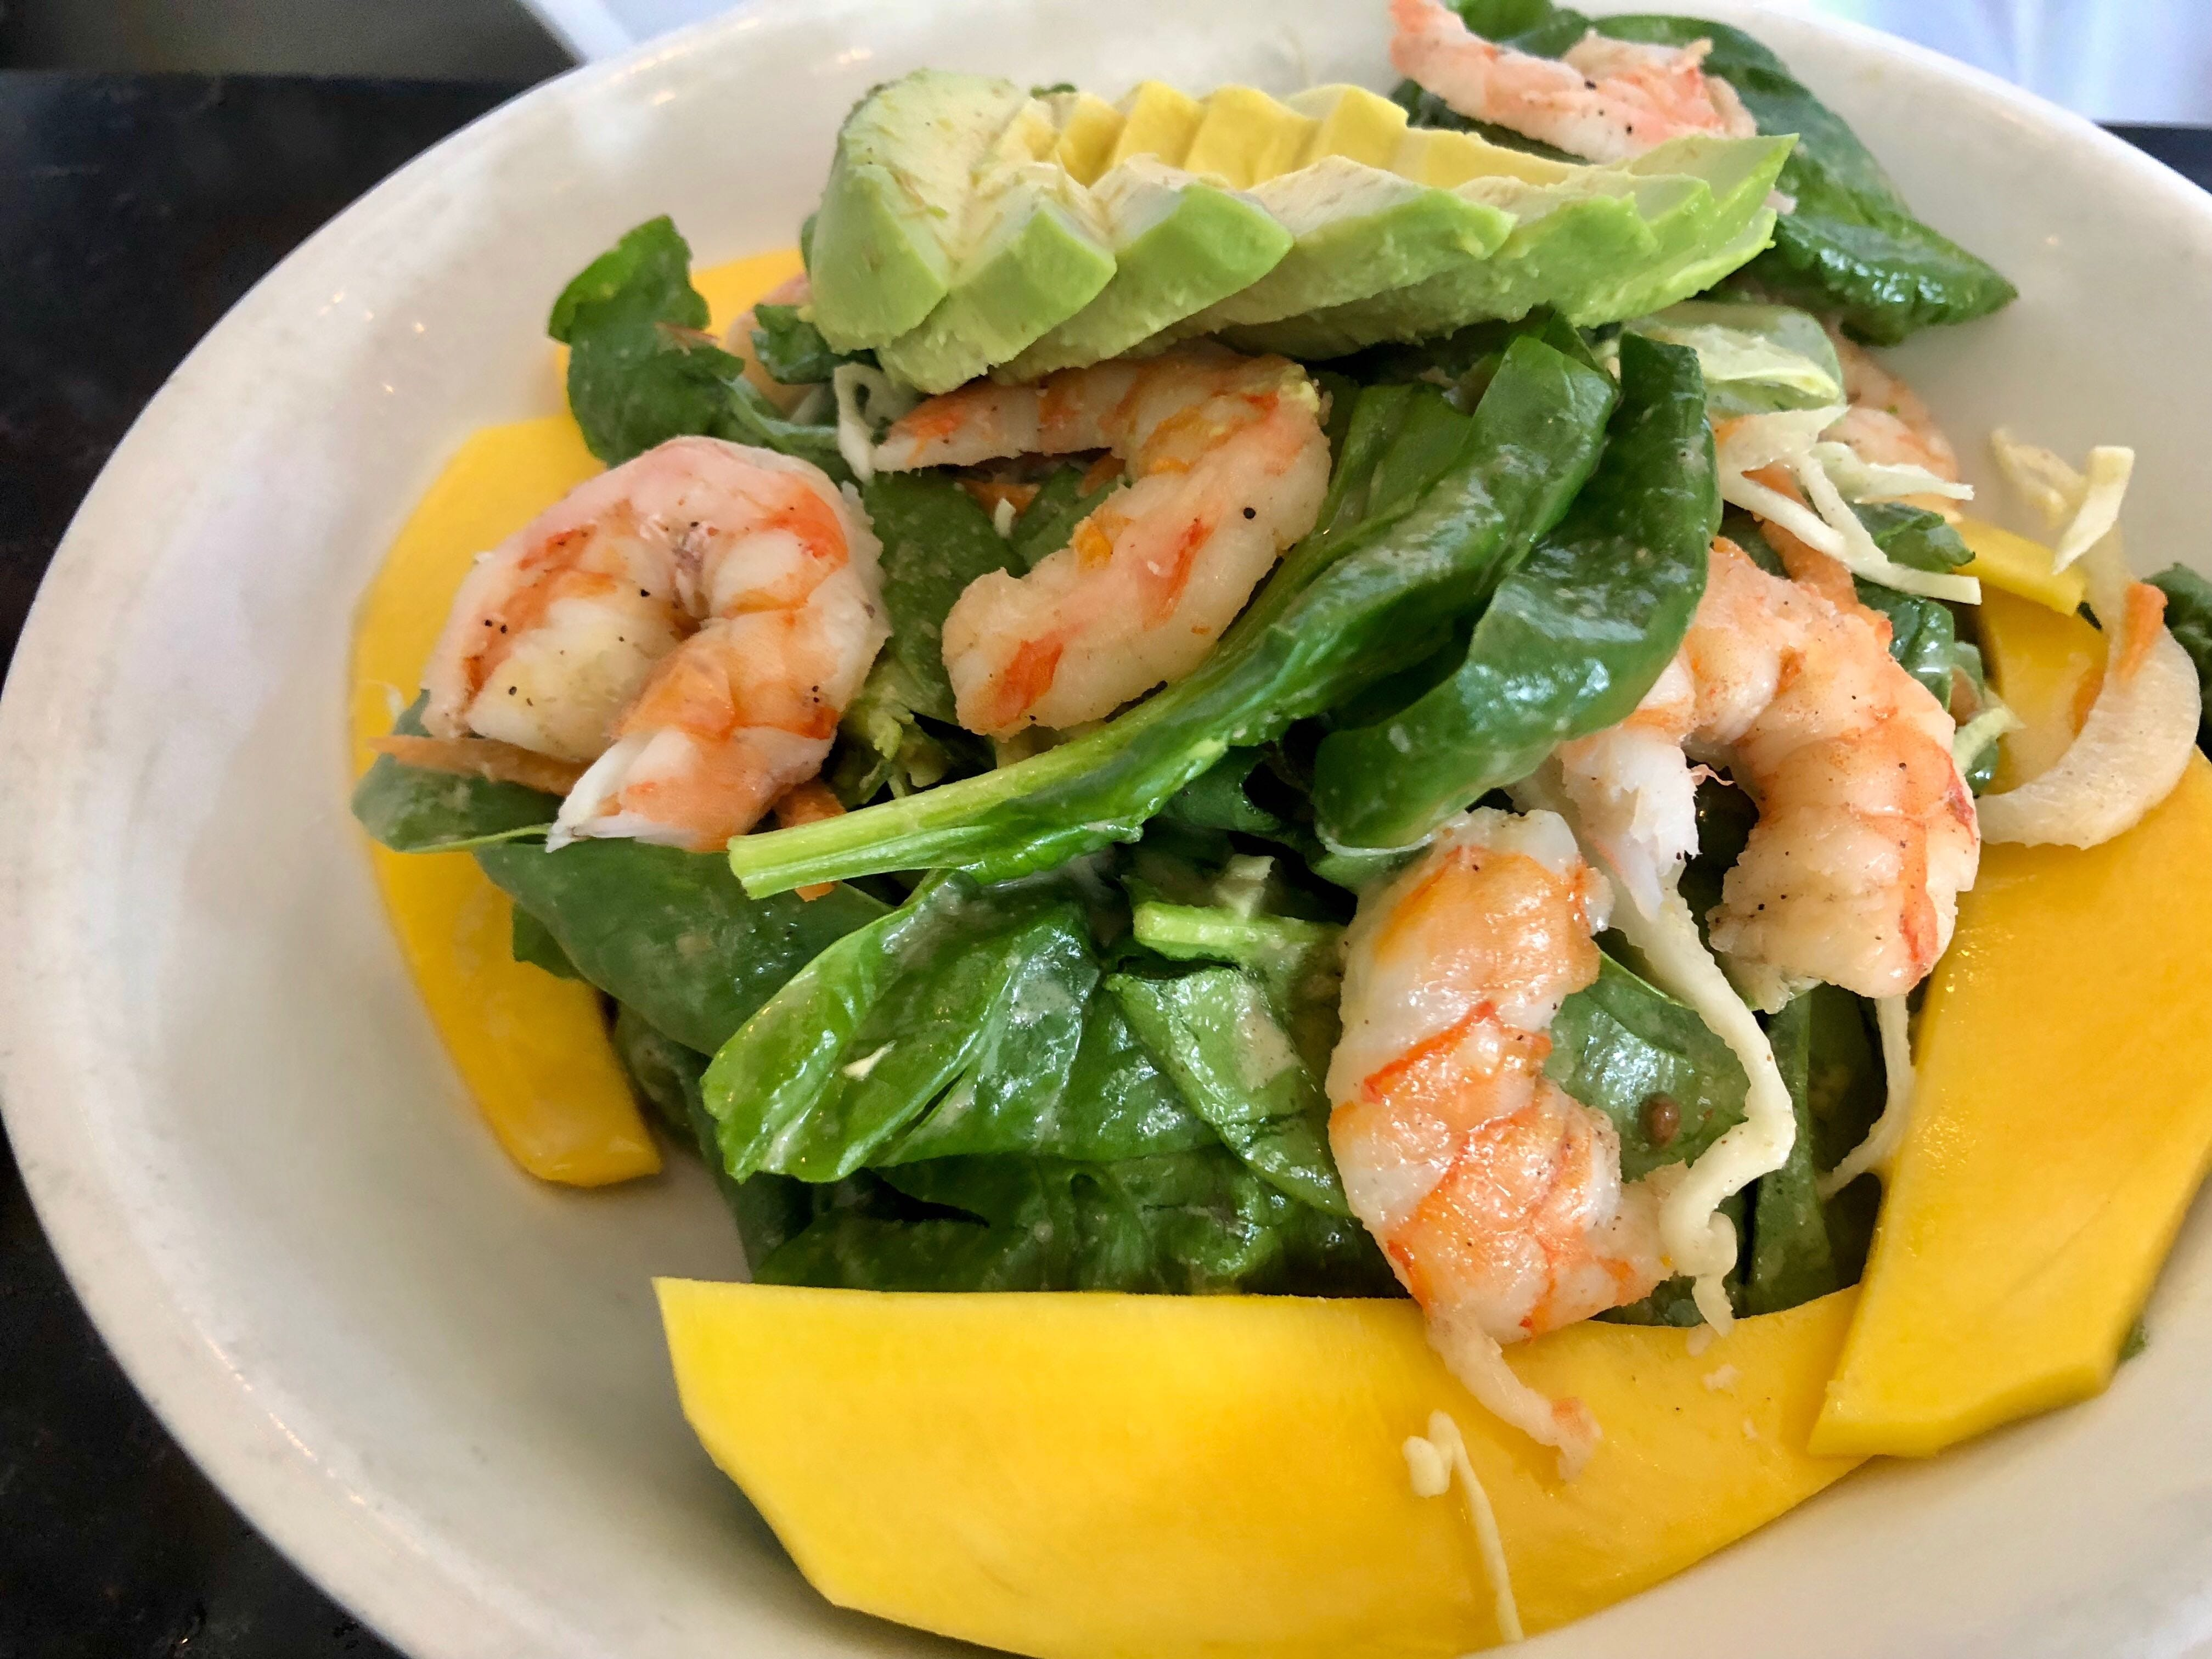 Shrimp, mango and avocado salad makes for a perfect lunch at The Local restaurant in North Naples.